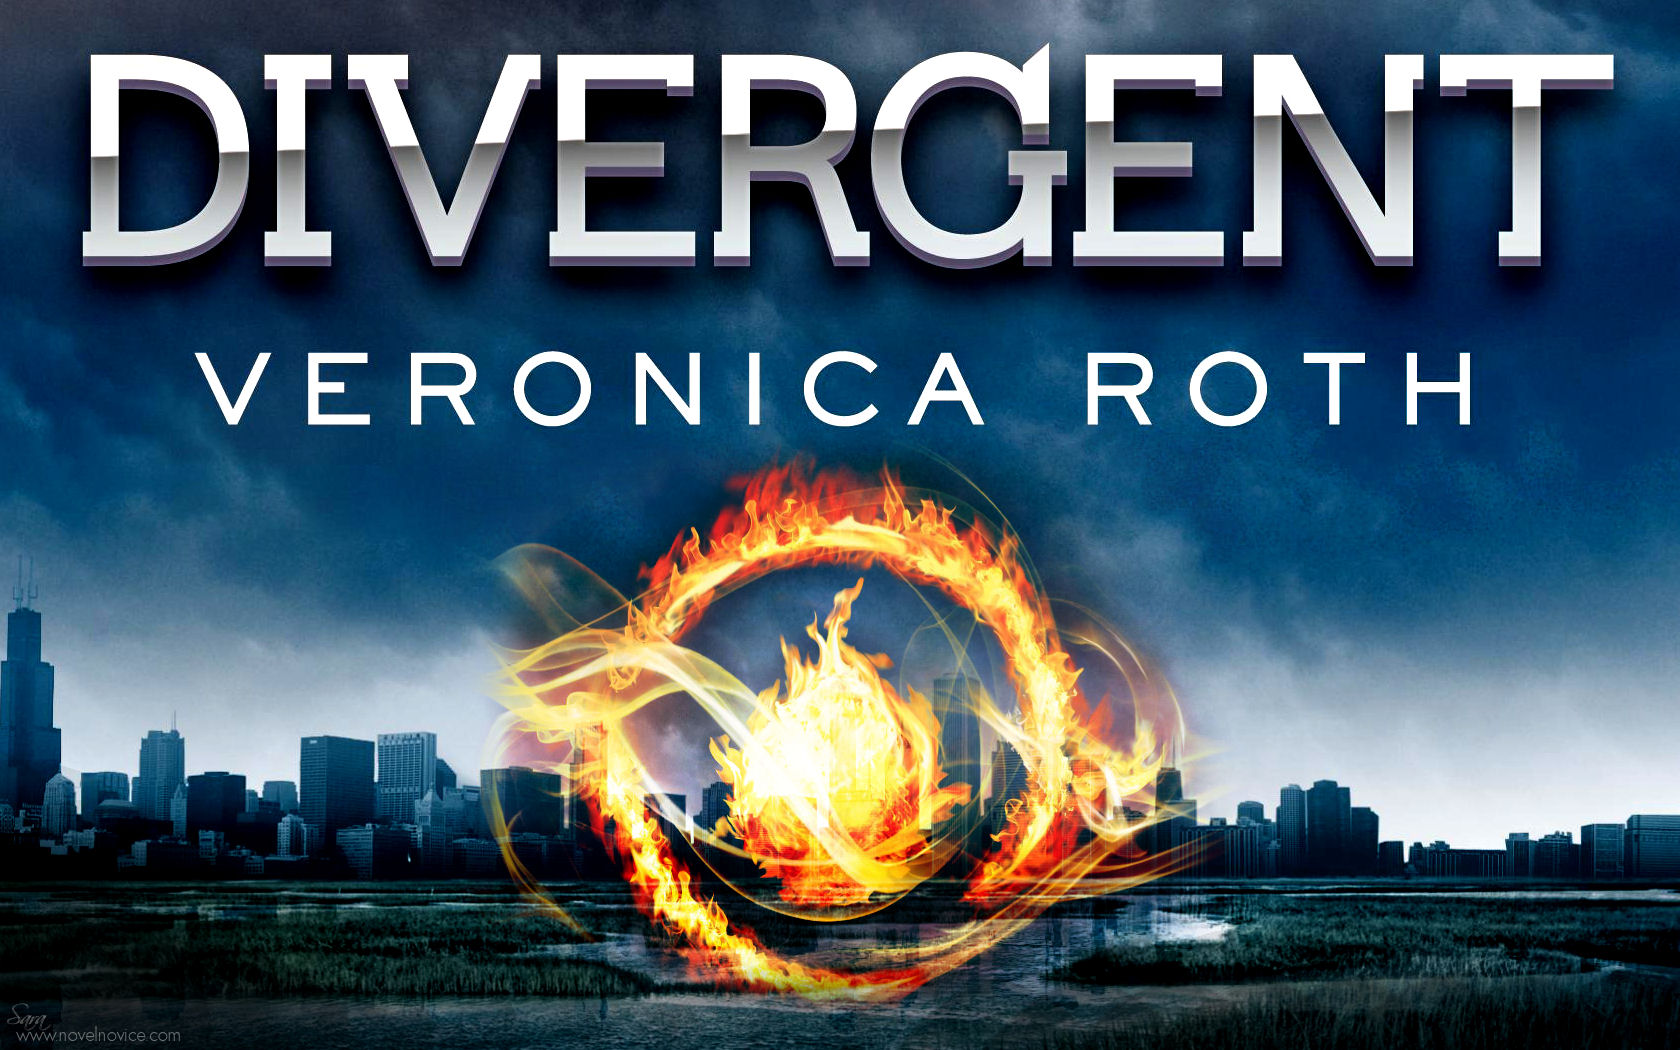 a review of insurgent a book in the divergent trilogy by veronica roth Insurgent (divergent trilogy, book 2) by veronica roth - book cover, description, publication history.